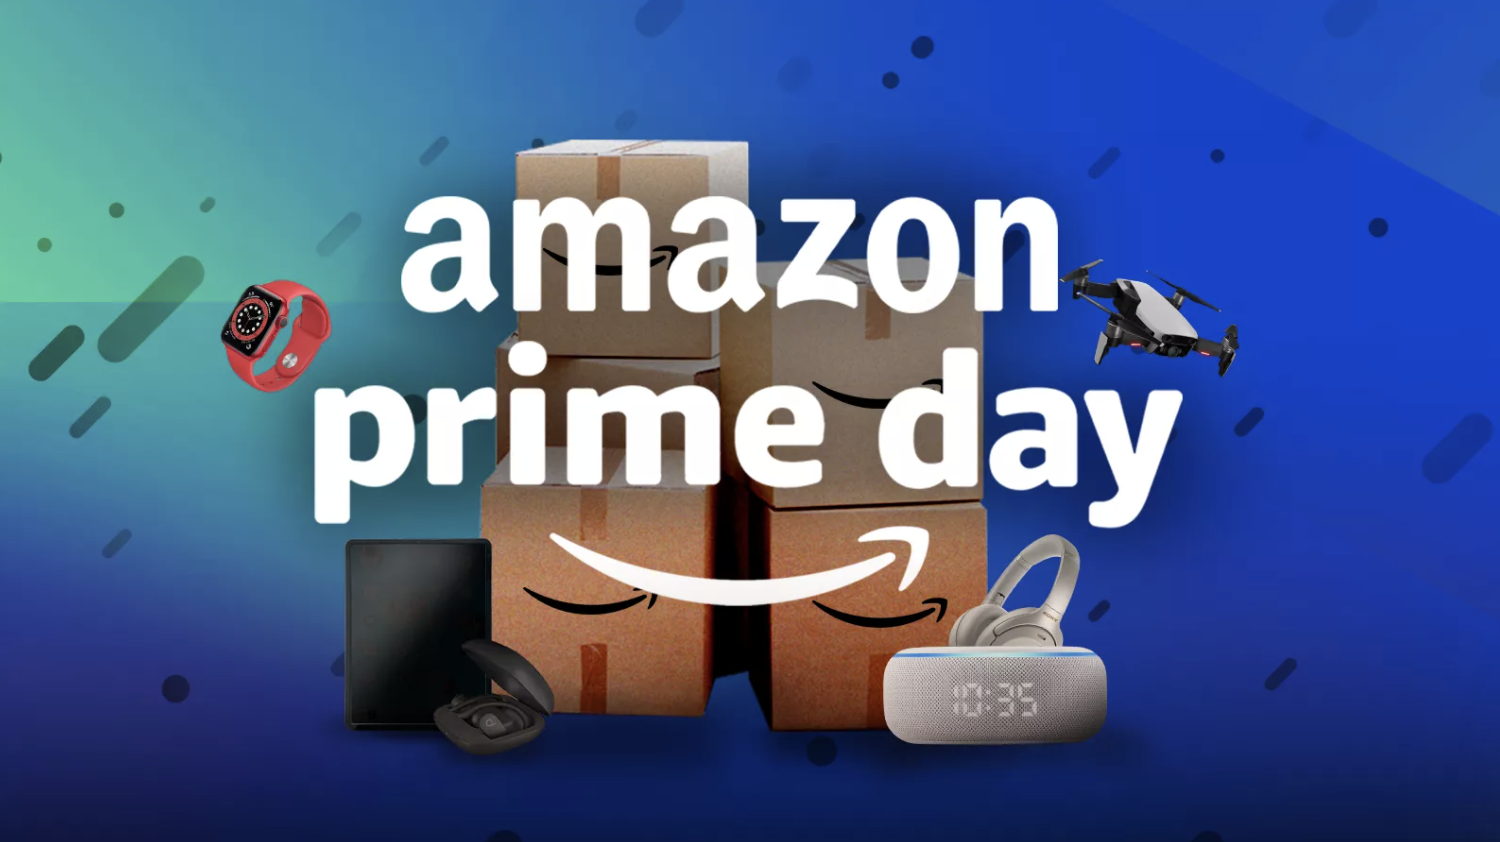 Best Wi-Fi and Mesh Router Deals While You Wait for Prime Day